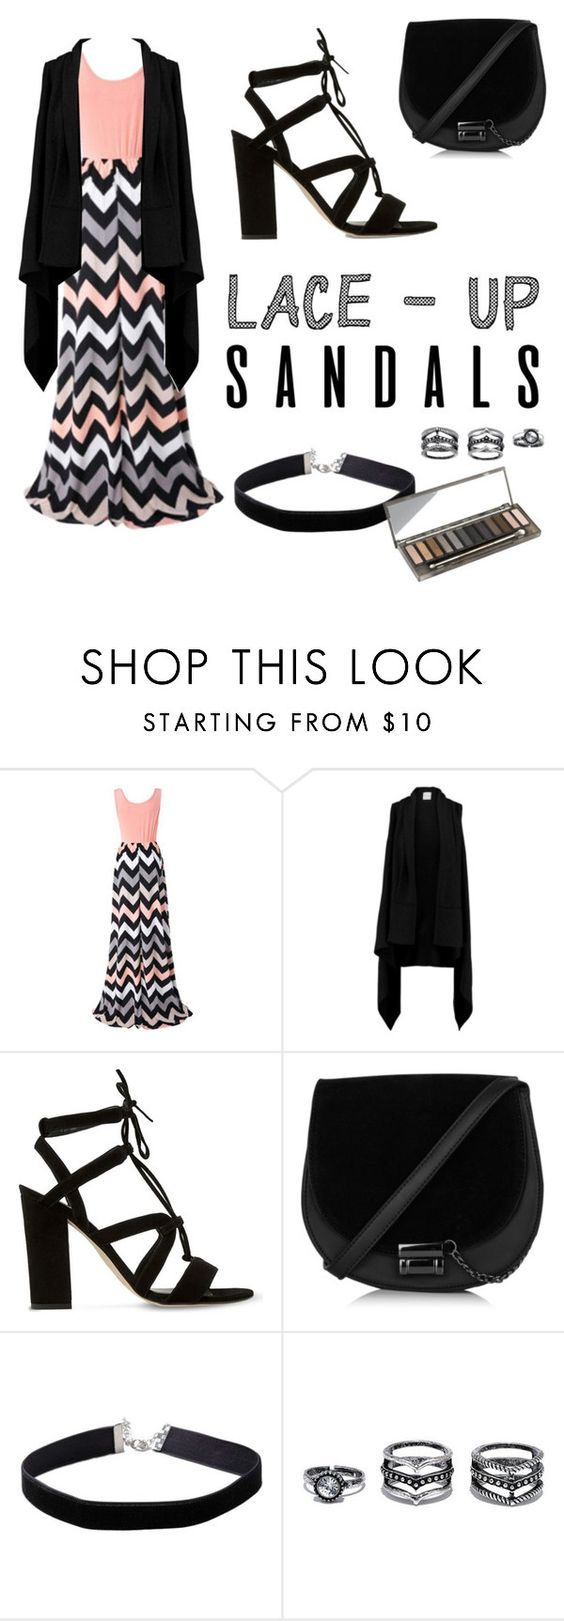 """What do u think of this?.."" by miabellawehri ❤ liked on Polyvore featuring Chicnova Fashion, Madeleine Thompson, Dune, Miss Selfridge, LULUS, Urban Decay, contestentry, laceupsandals and PVStyleInsiderContest"